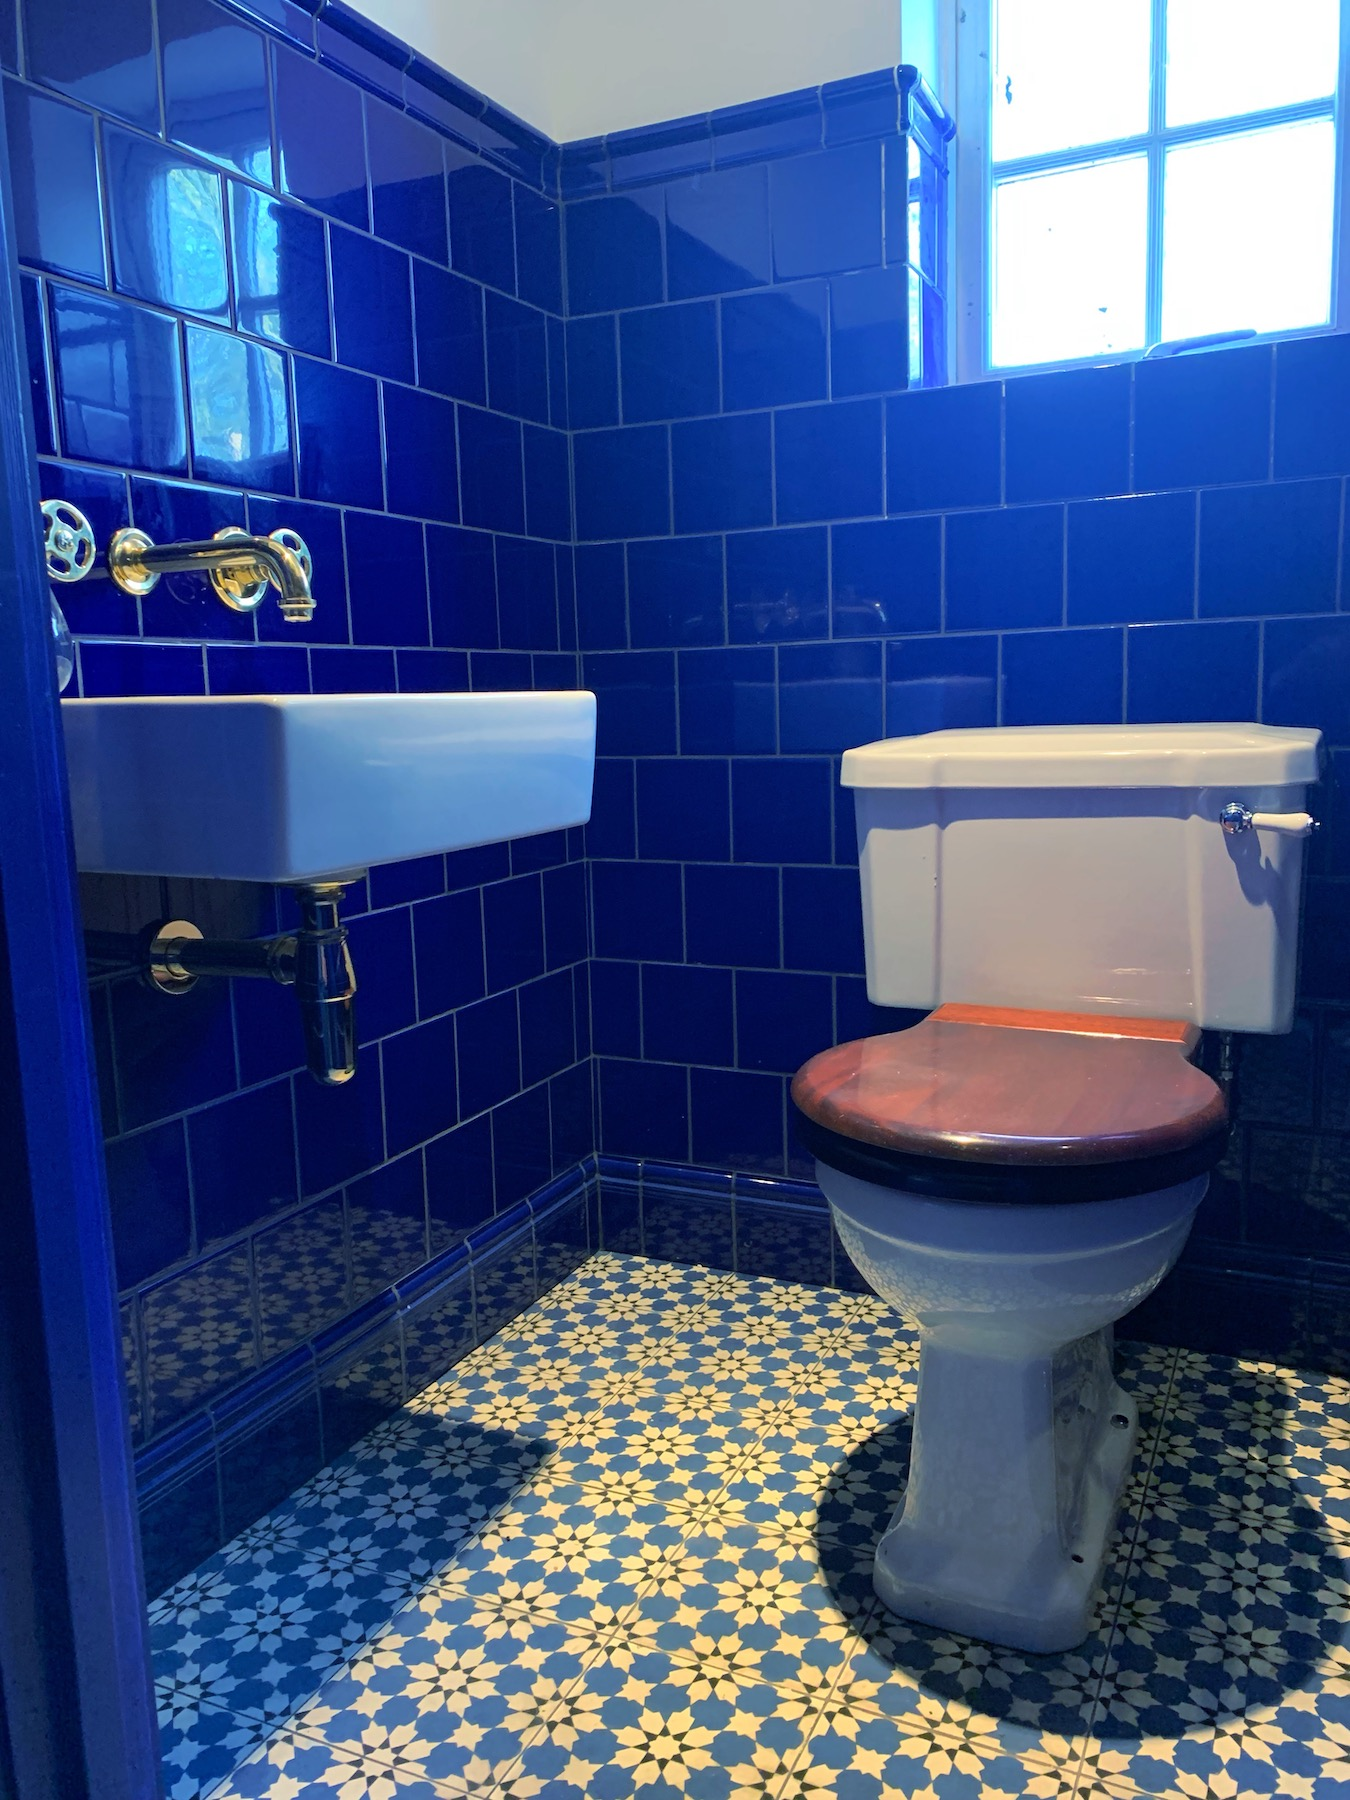 The down stairs loo tiled in deep dark blue tiles from Milton Hollis in the home of interior designer Sophi Robinson